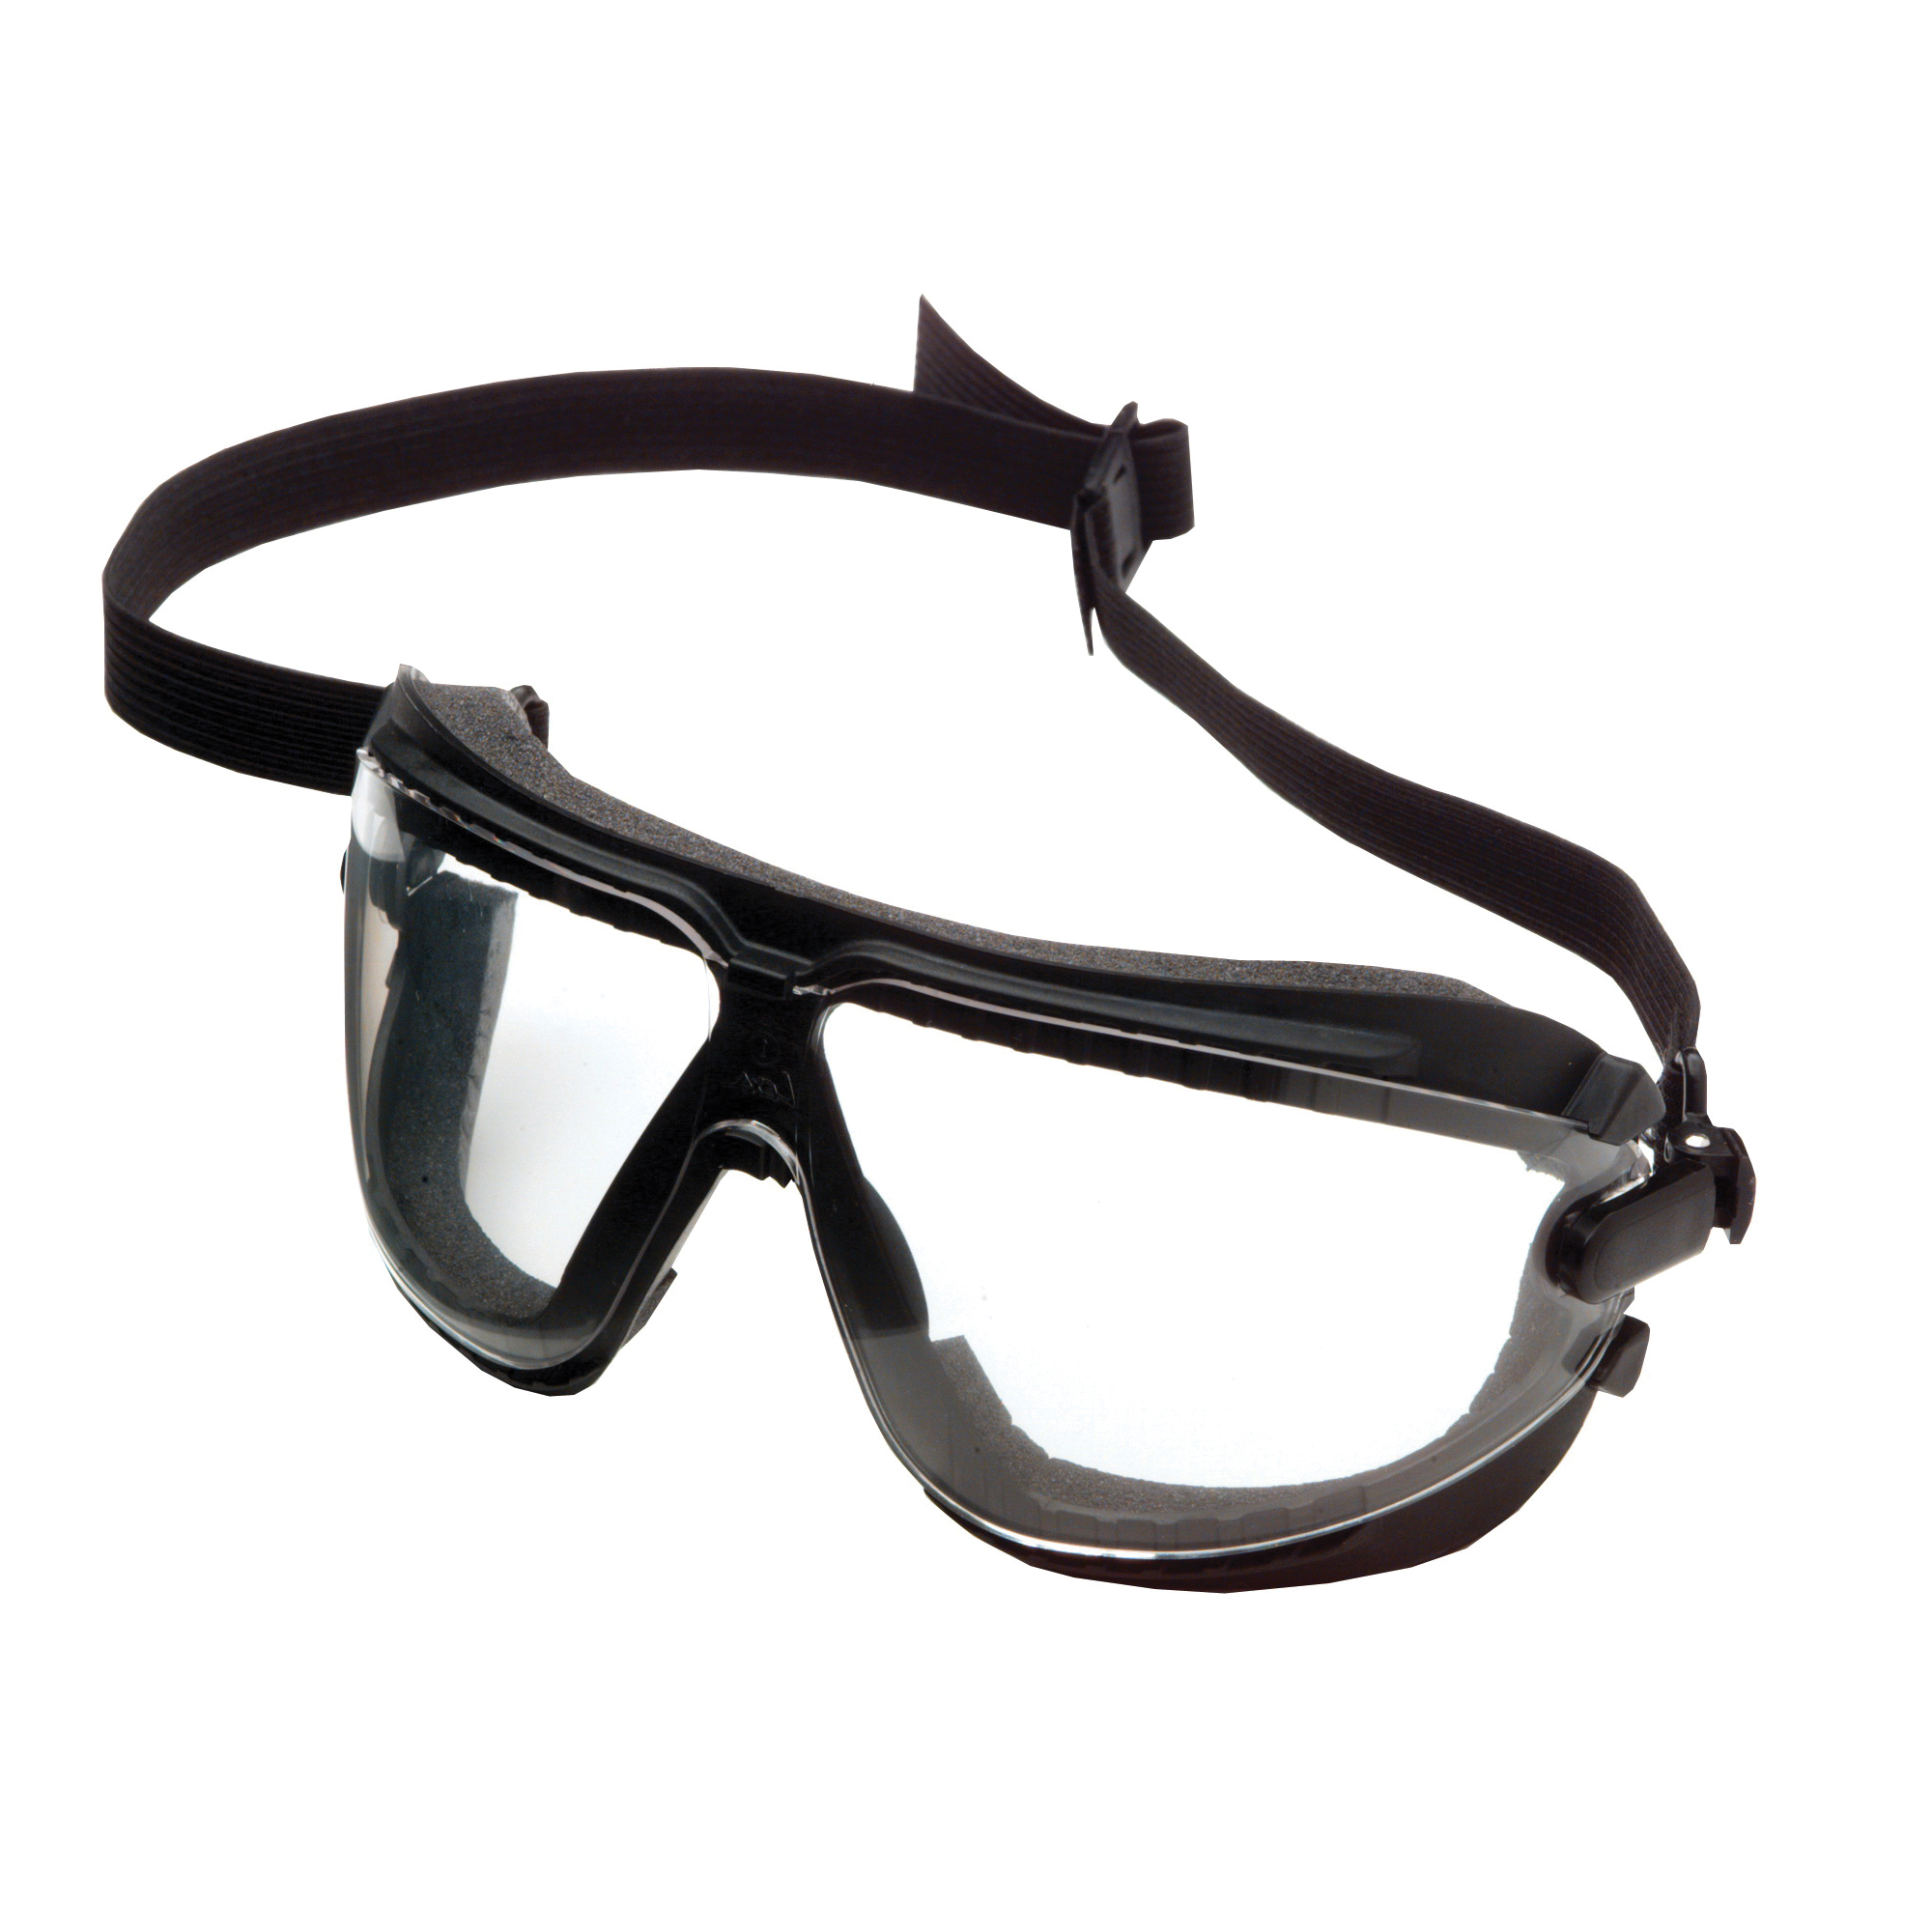 3M™ GoggleGear™ 078371-62330 Direct Vent Lightweight Value Safety Goggles, Anti-Fog/Impact-Resistant/UV-Protective Clear Polycarbonate Lens, 99.9 % UV Protection, Elastic Strap, ANSI Z87.1-2003, CSA Z94.3-2007